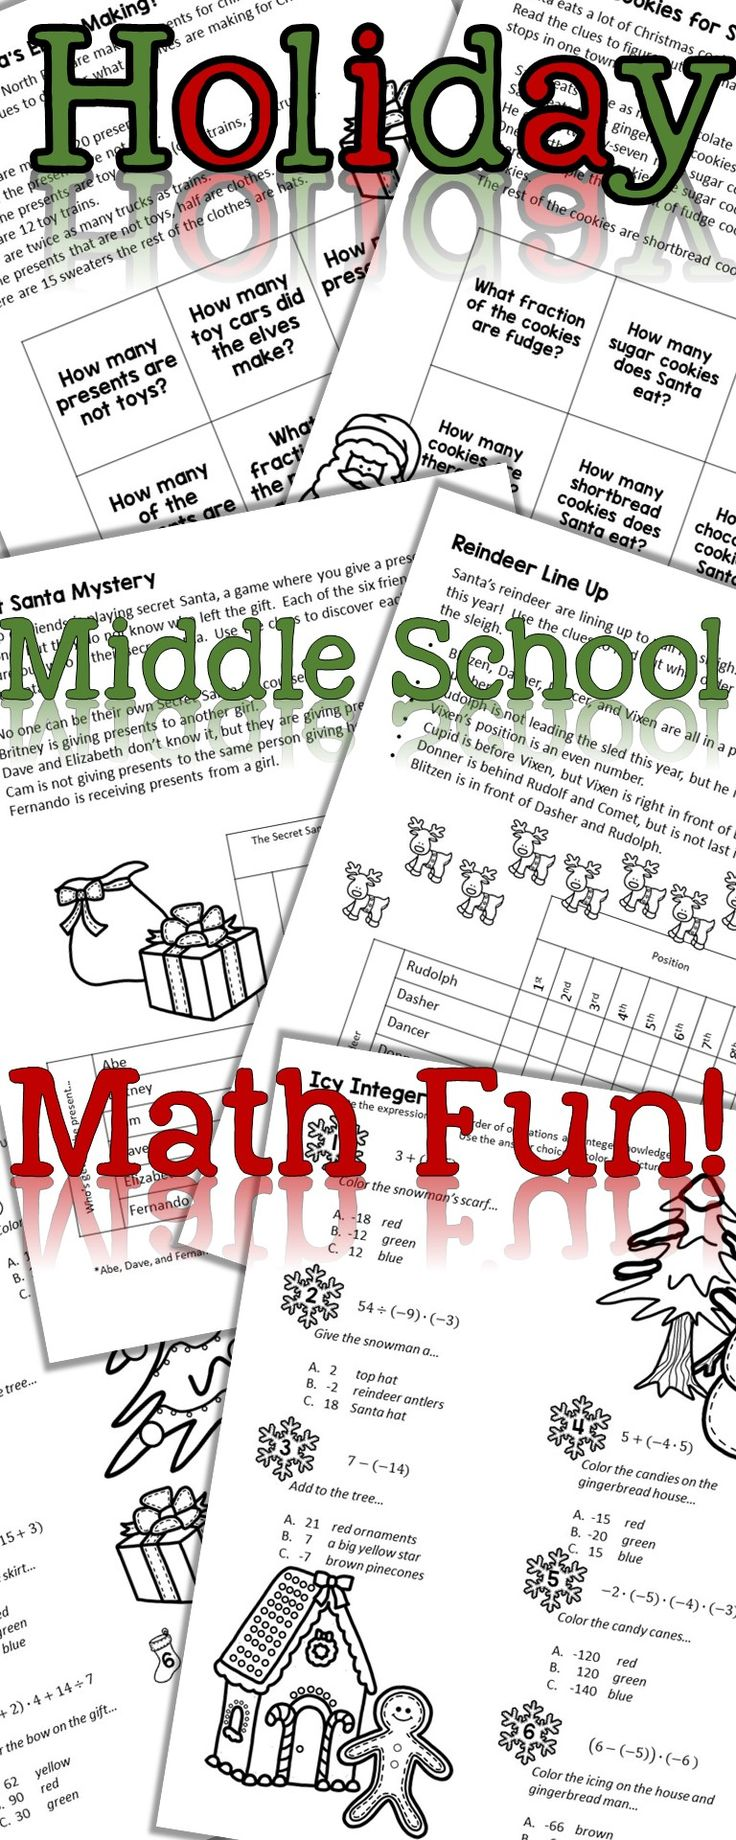 431 best Math Ideas and Strategies (Middle/High School) images on ...